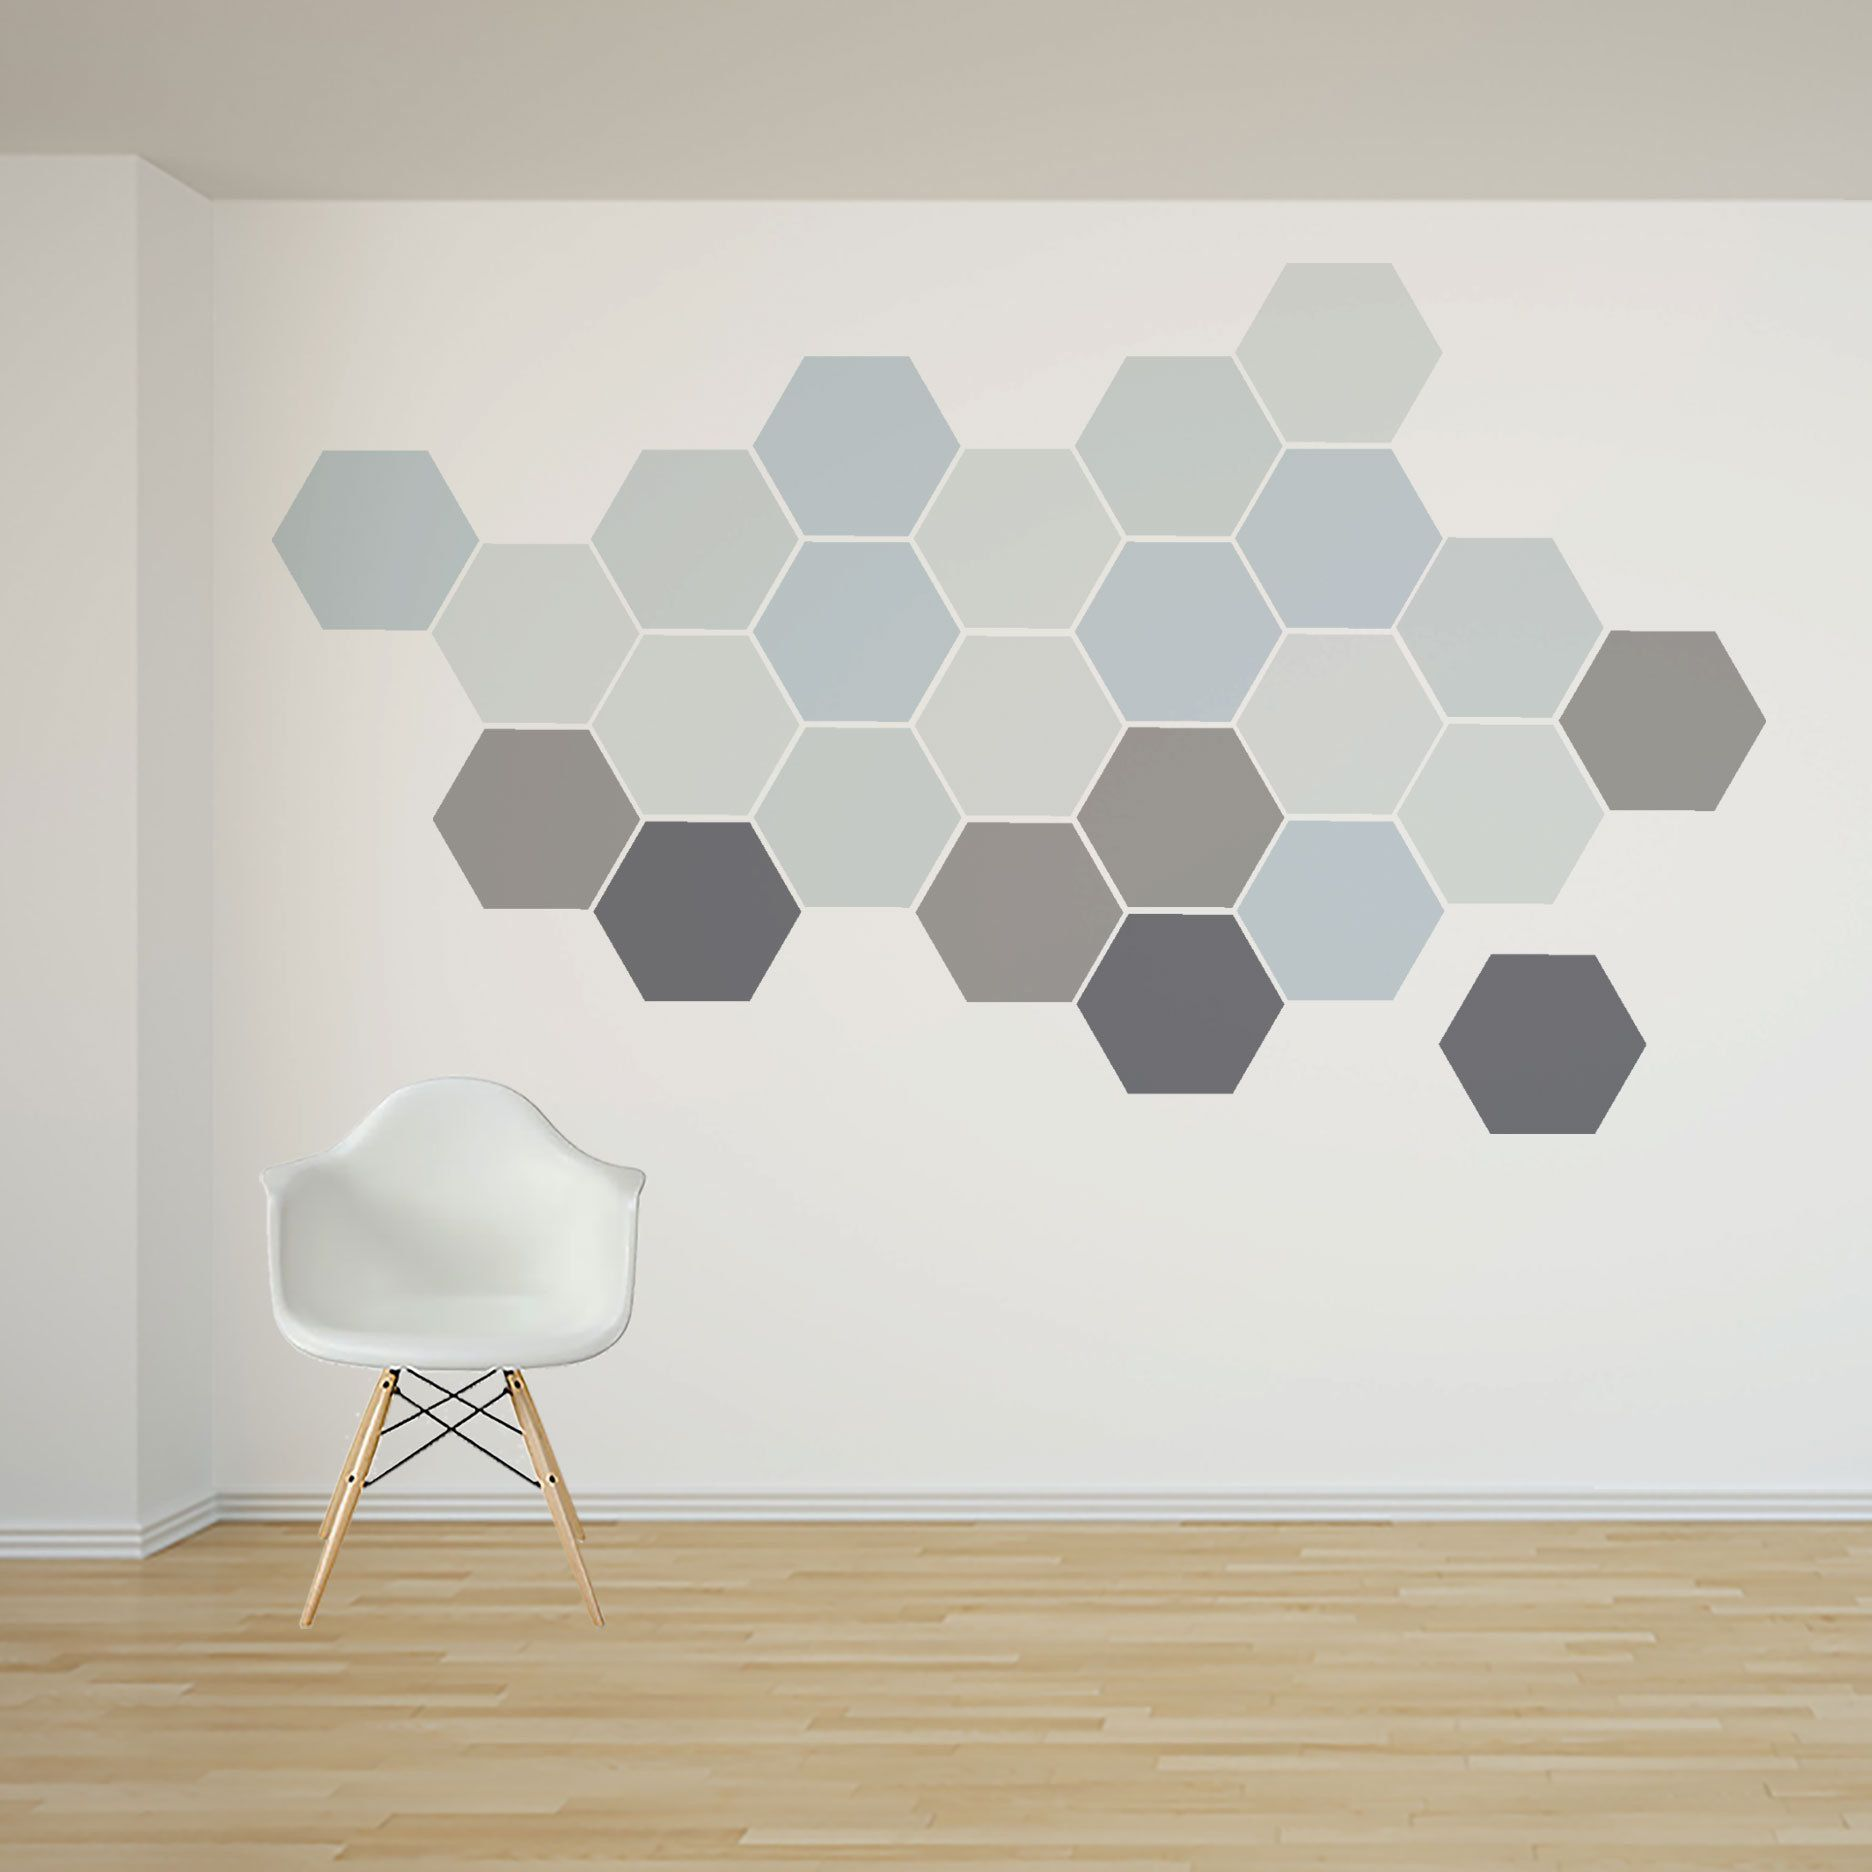 Removable Honeycomb Wall Decal 8 Hexagon Stickers Per Pack Self